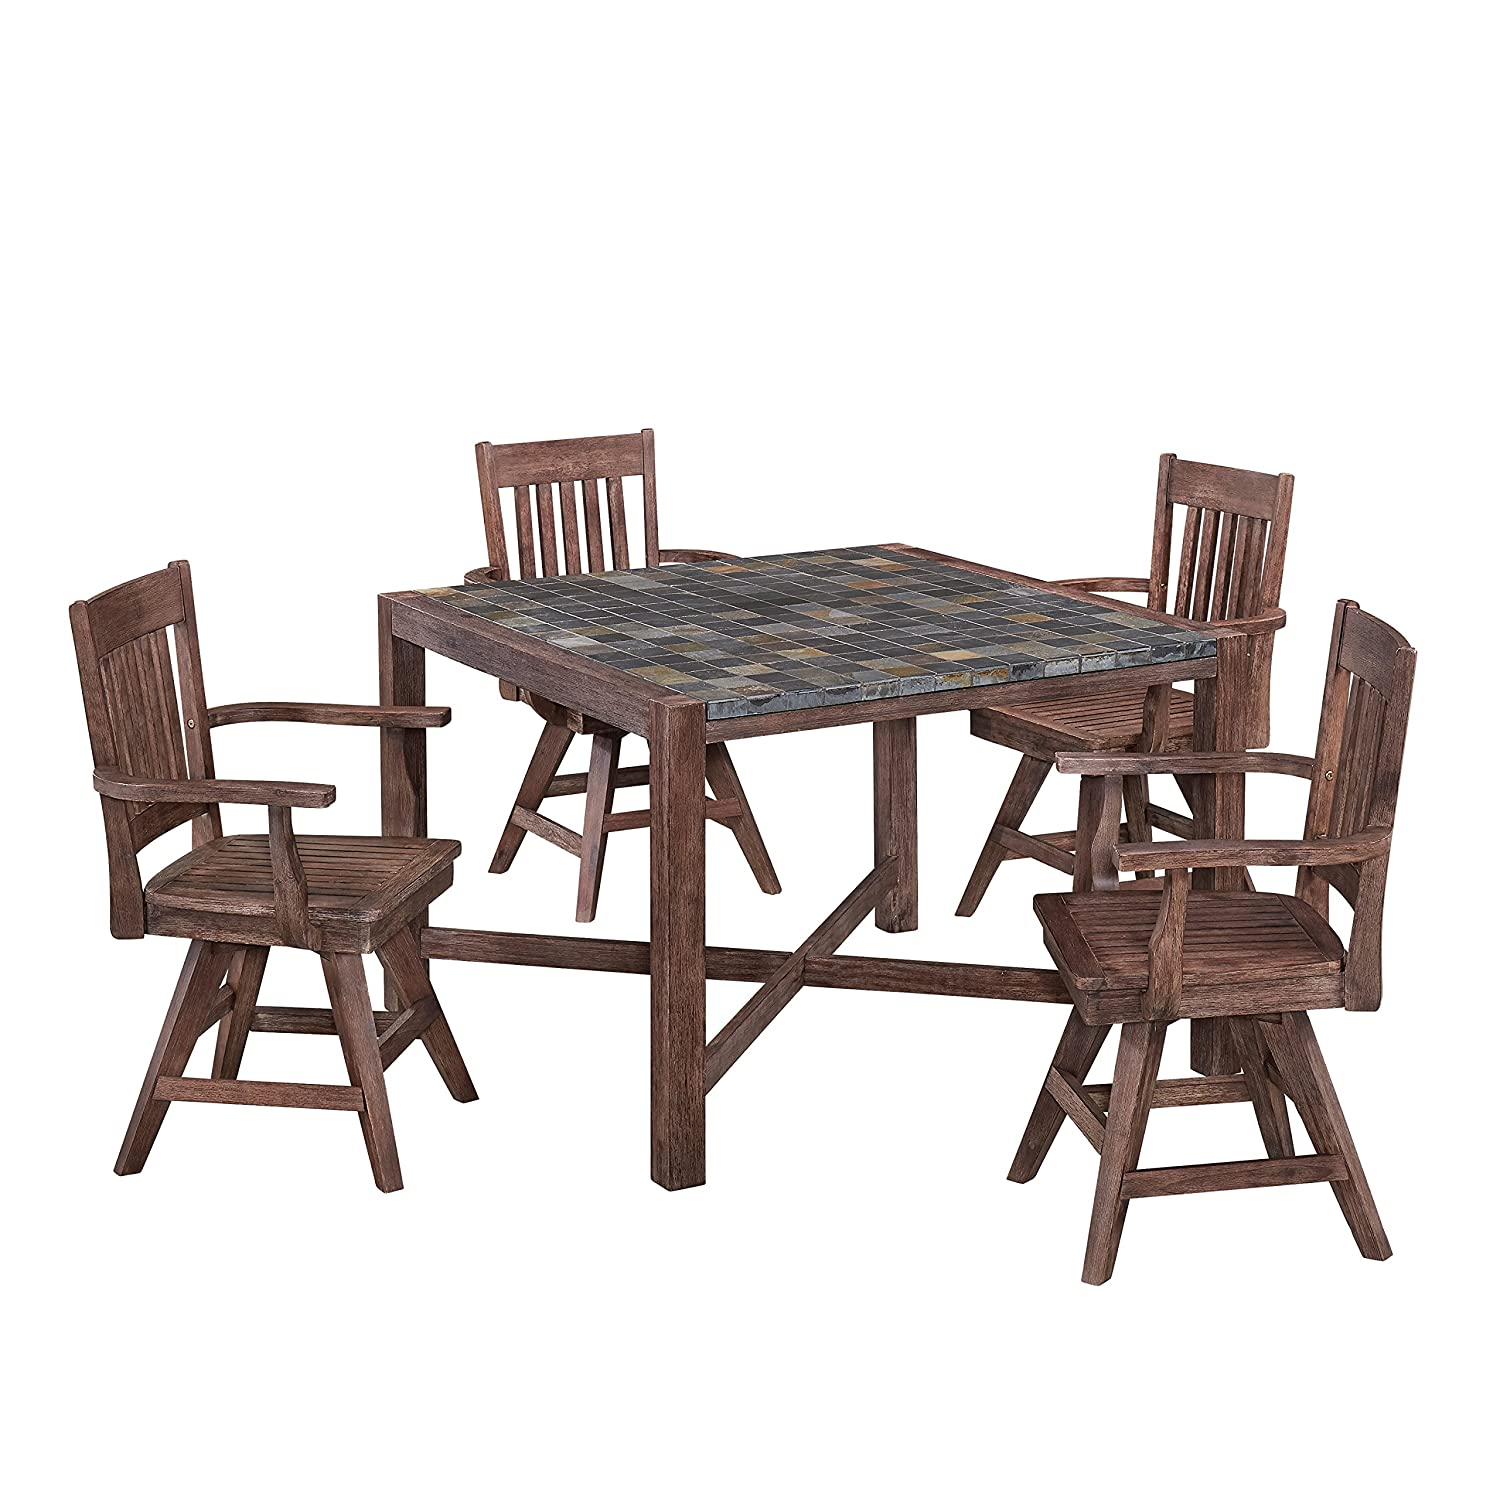 Awesome Morocco Dining Set With Square Table And Four Swivel Chairs By Home Styles Ncnpc Chair Design For Home Ncnpcorg